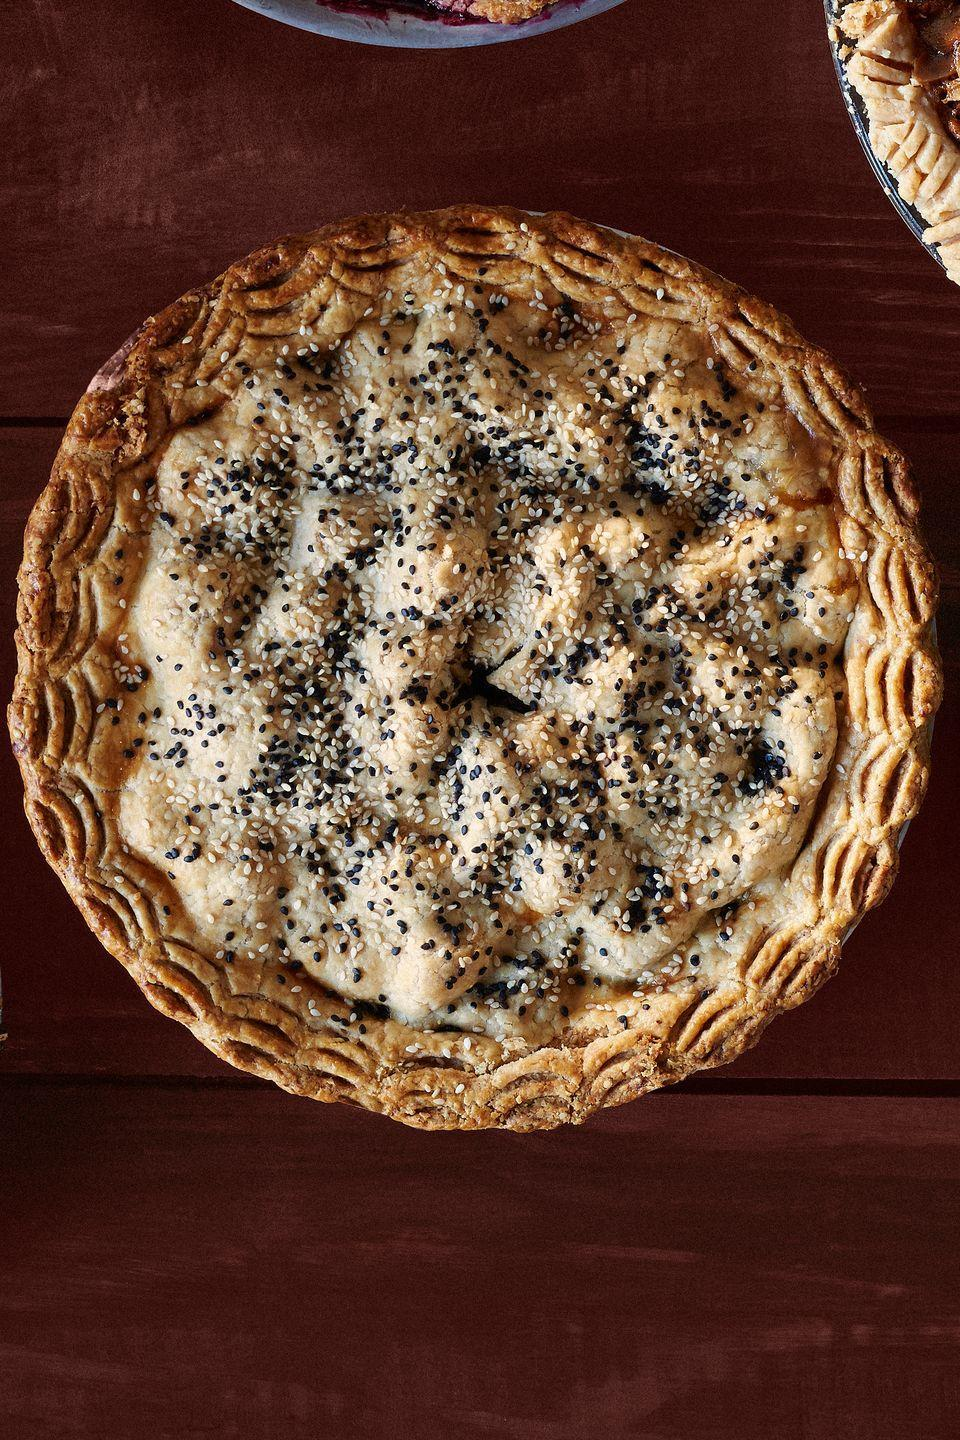 """<p>This unexpected flavor combo is so good, it will have your guests asking for seconds.</p><p><strong><a href=""""https://www.countryliving.com/food-drinks/recipes/a36553/pear-date-and-sesame-pie/"""" rel=""""nofollow noopener"""" target=""""_blank"""" data-ylk=""""slk:Get the recipe"""" class=""""link rapid-noclick-resp"""">Get the recipe</a>.</strong></p>"""